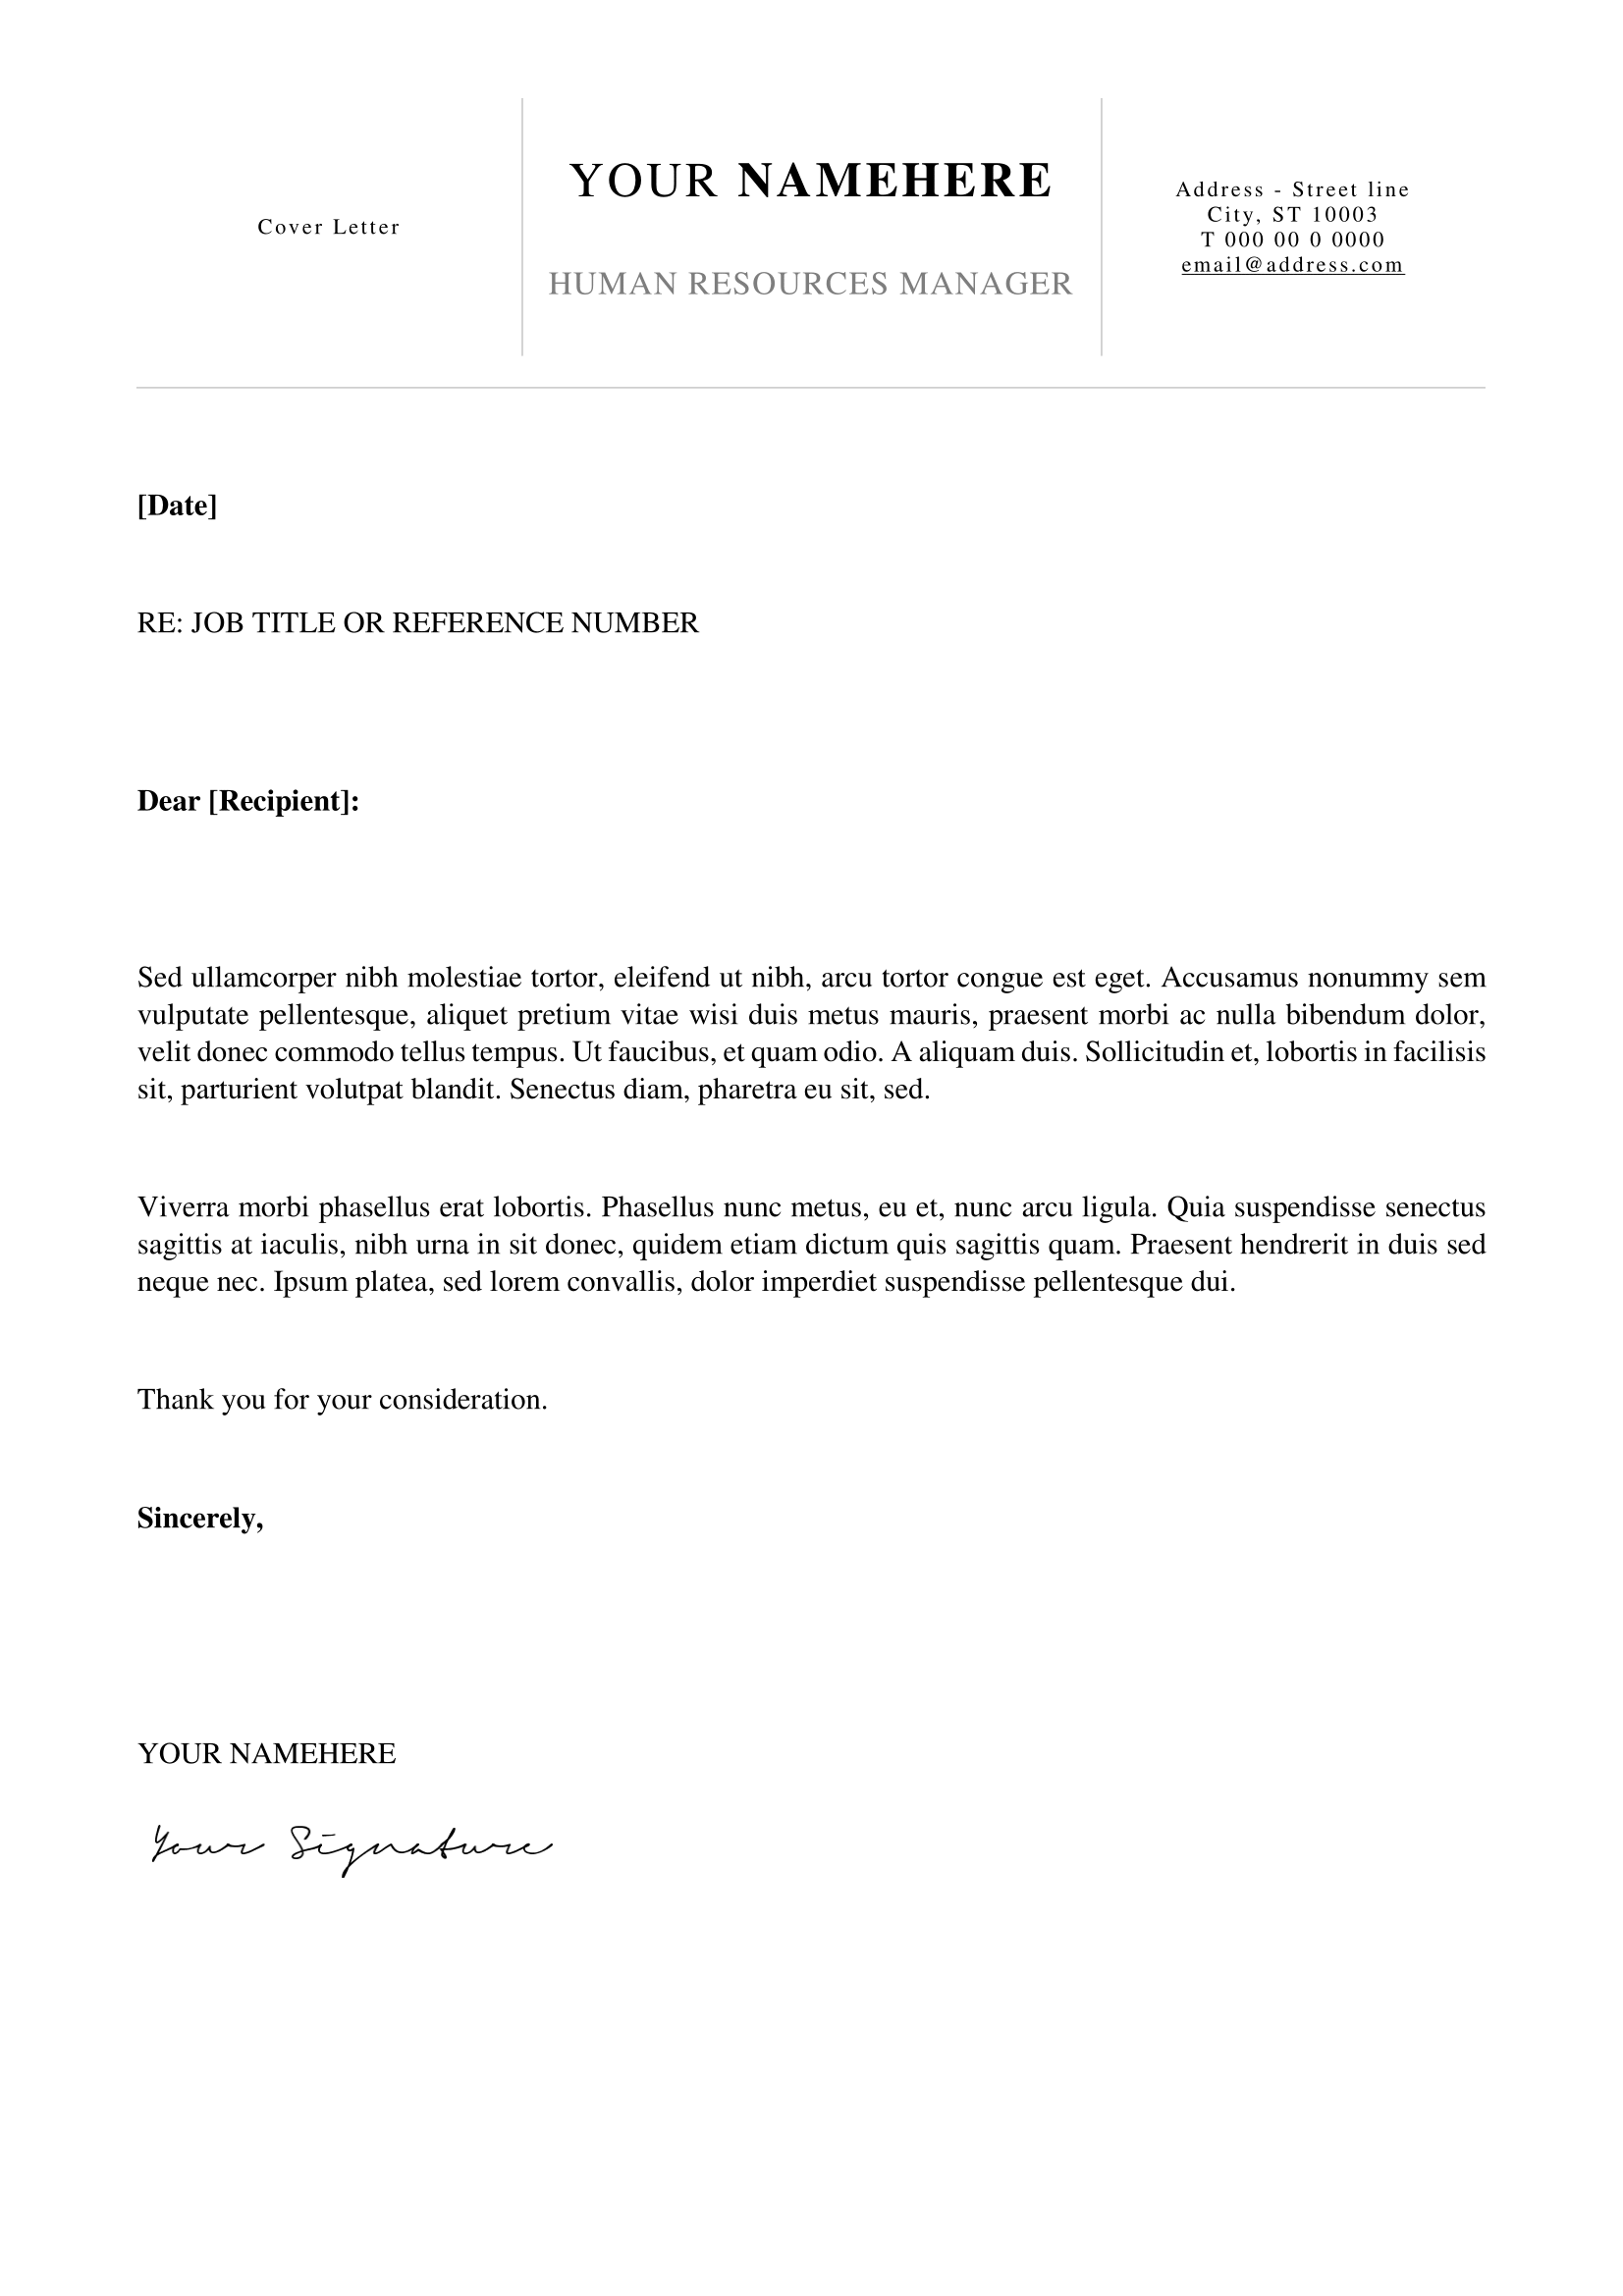 Kallio Free Simple Cover Letter Template For Word DOCX Basic - Simple cover letter template word